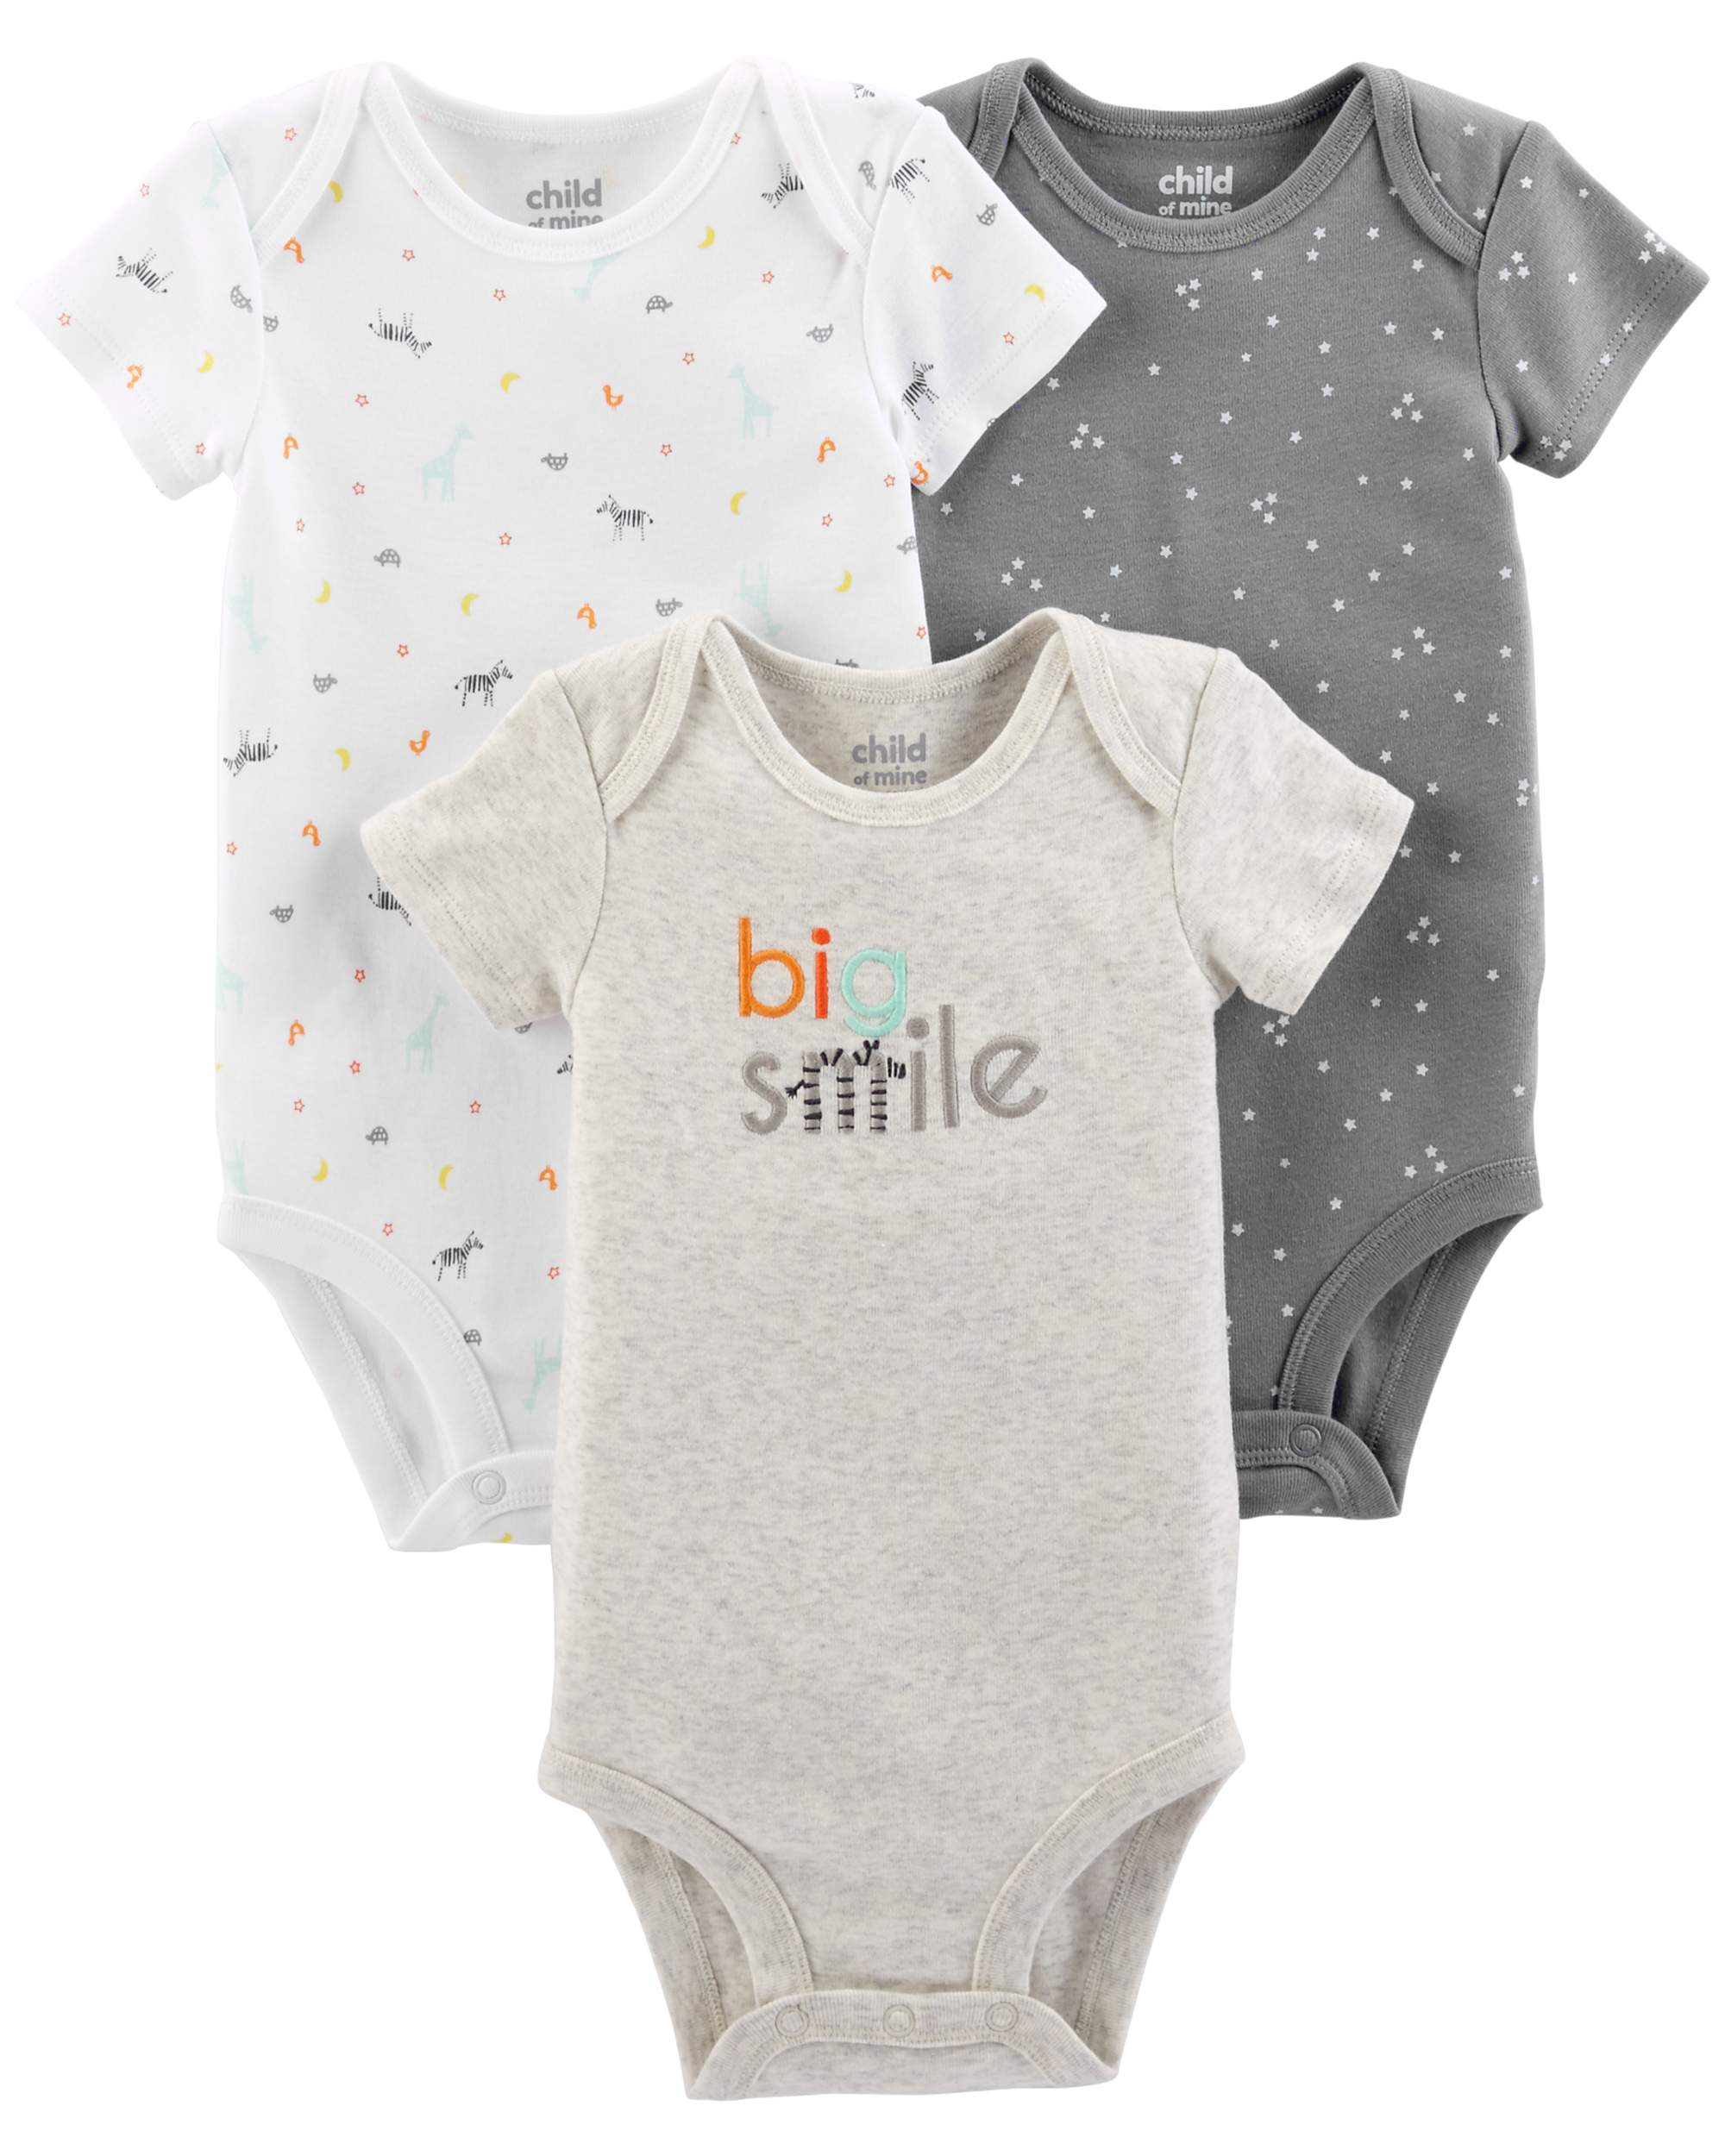 Child Of Mine By Carter's Short Sleeve Bodysuits, 3-pack (Baby Boys or Baby Girls, Unisex)